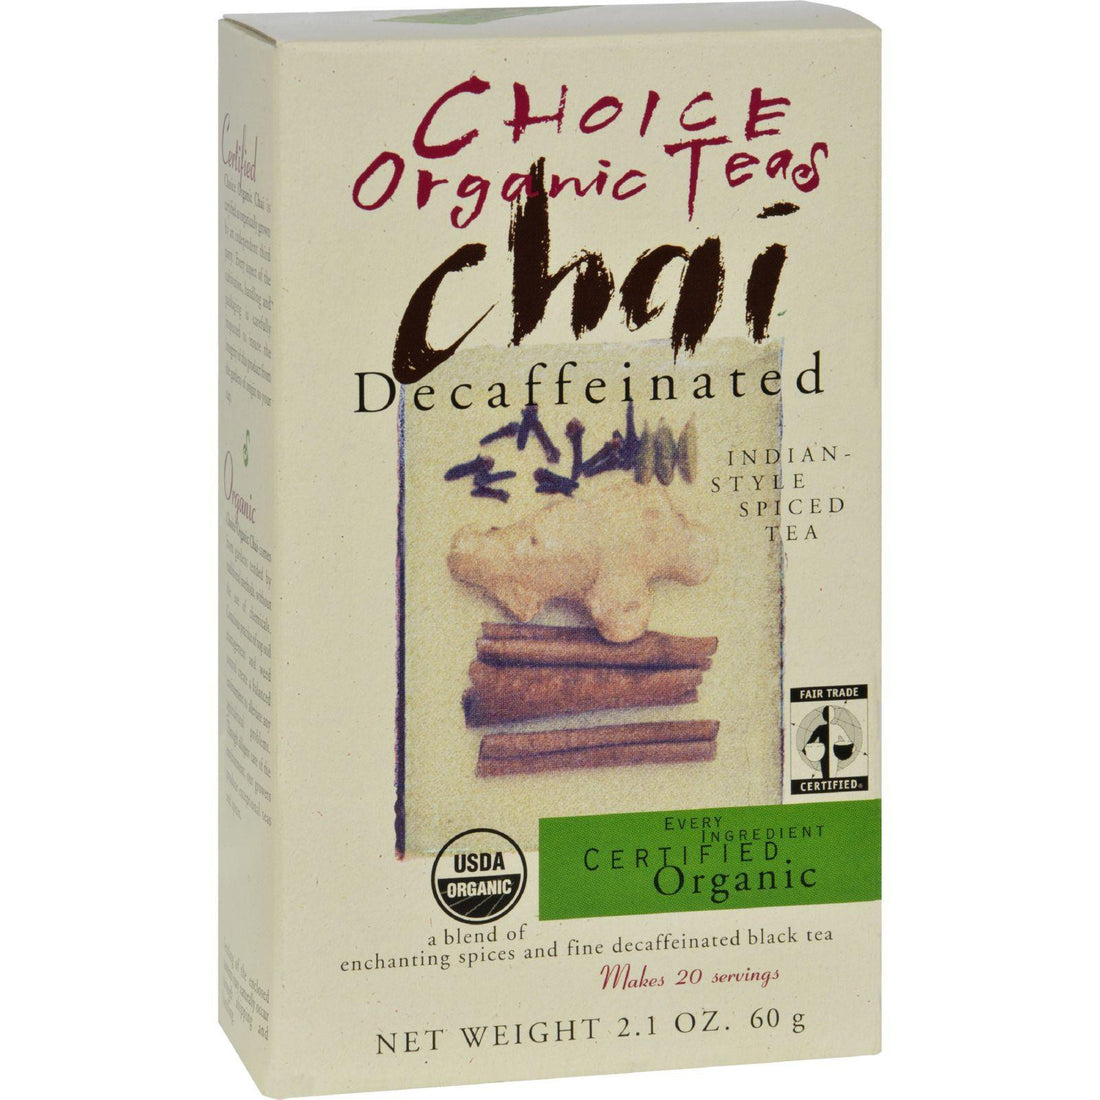 Mother Mantis: Choice Organic Teas Chai - Decaffeinated - 2.1 Oz Choice Organic Teas